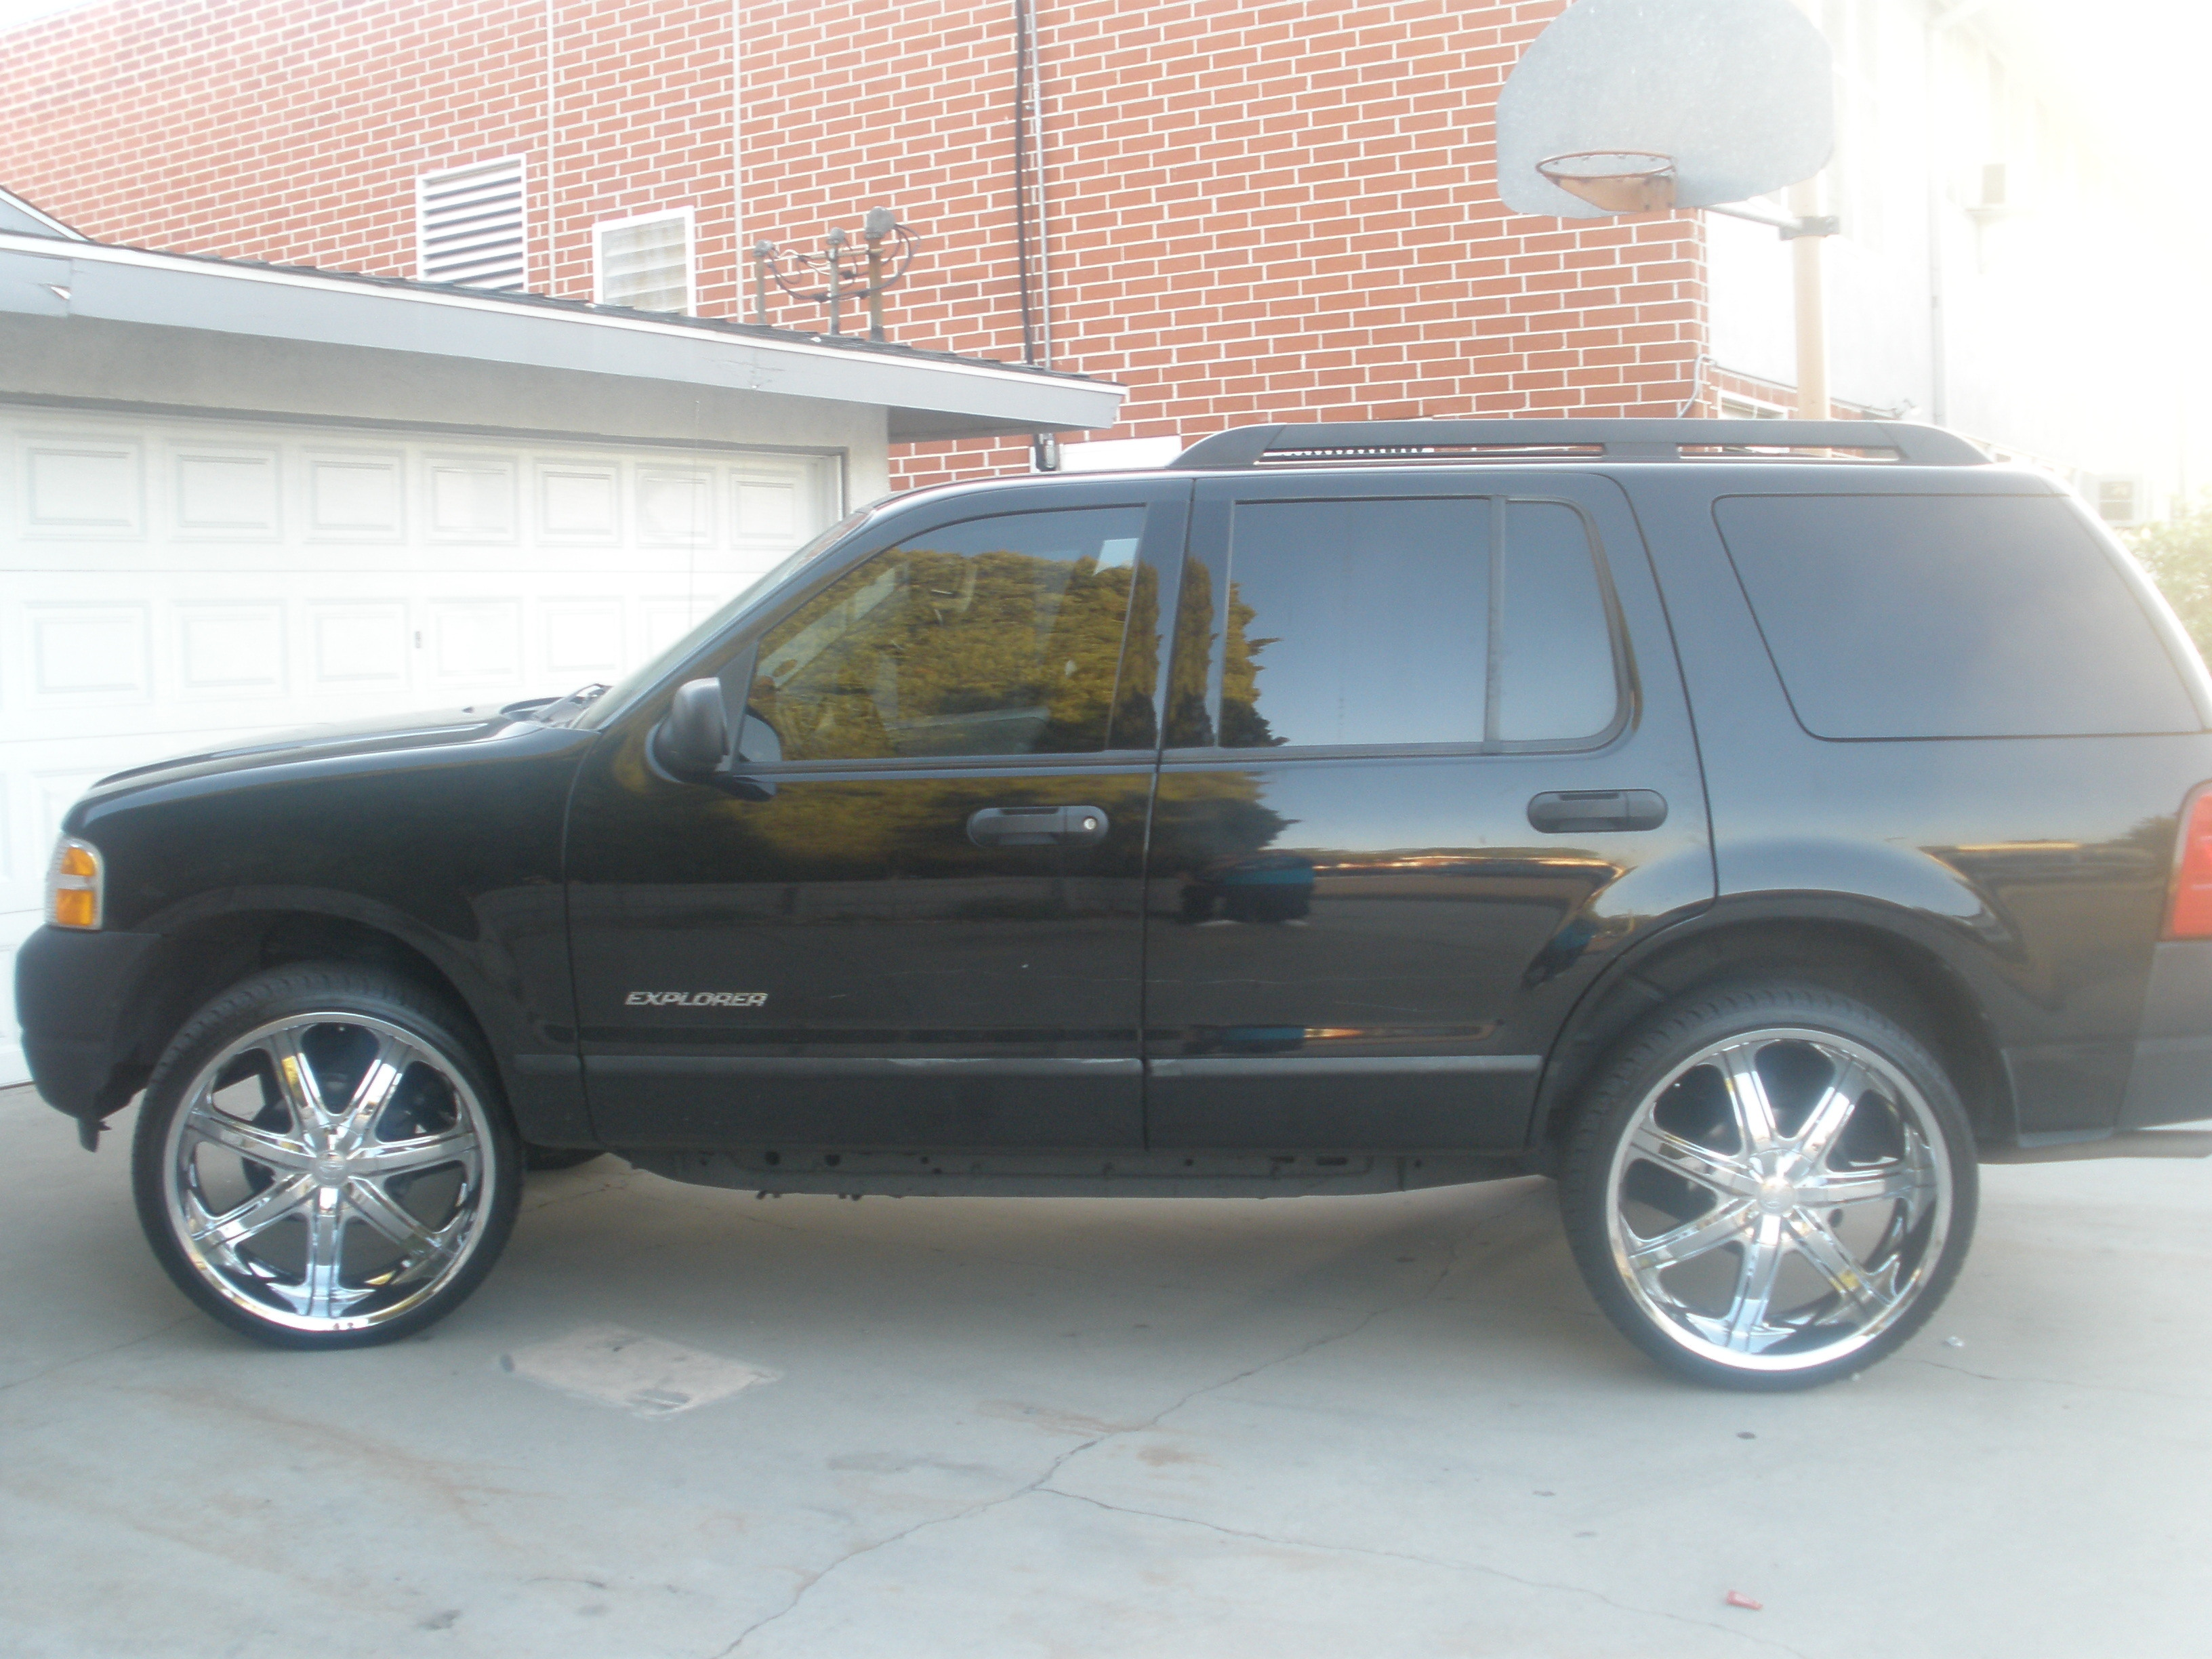 money_376's 2005 Ford Explorer